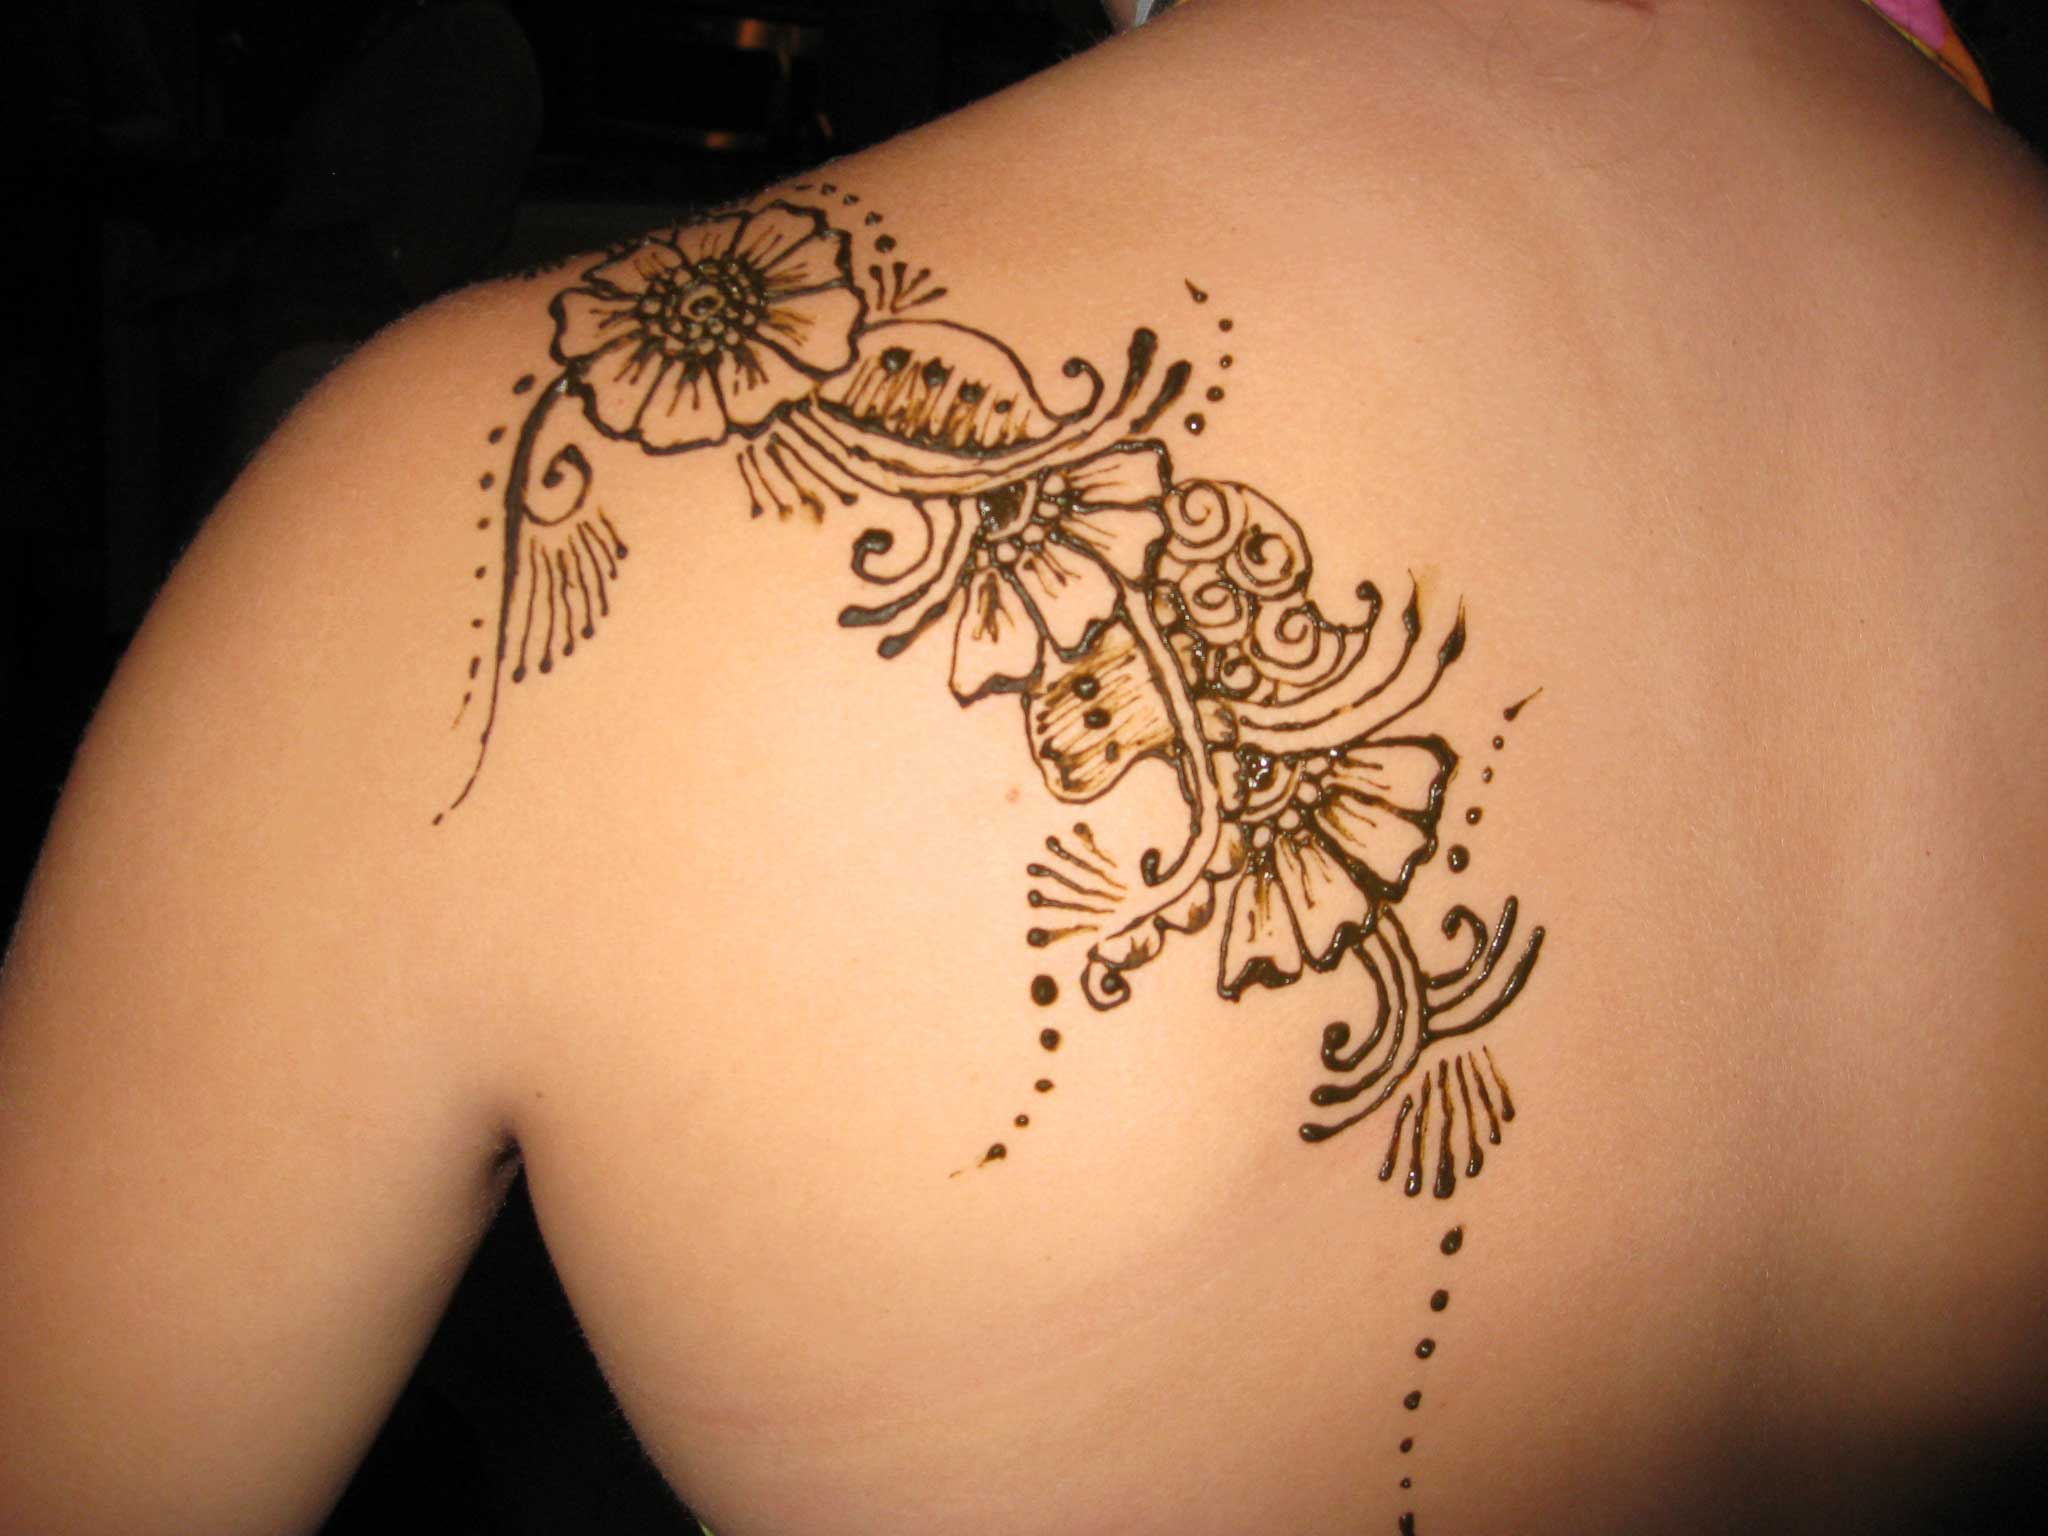 Tattoos Henna For Body: Henna Body Painting